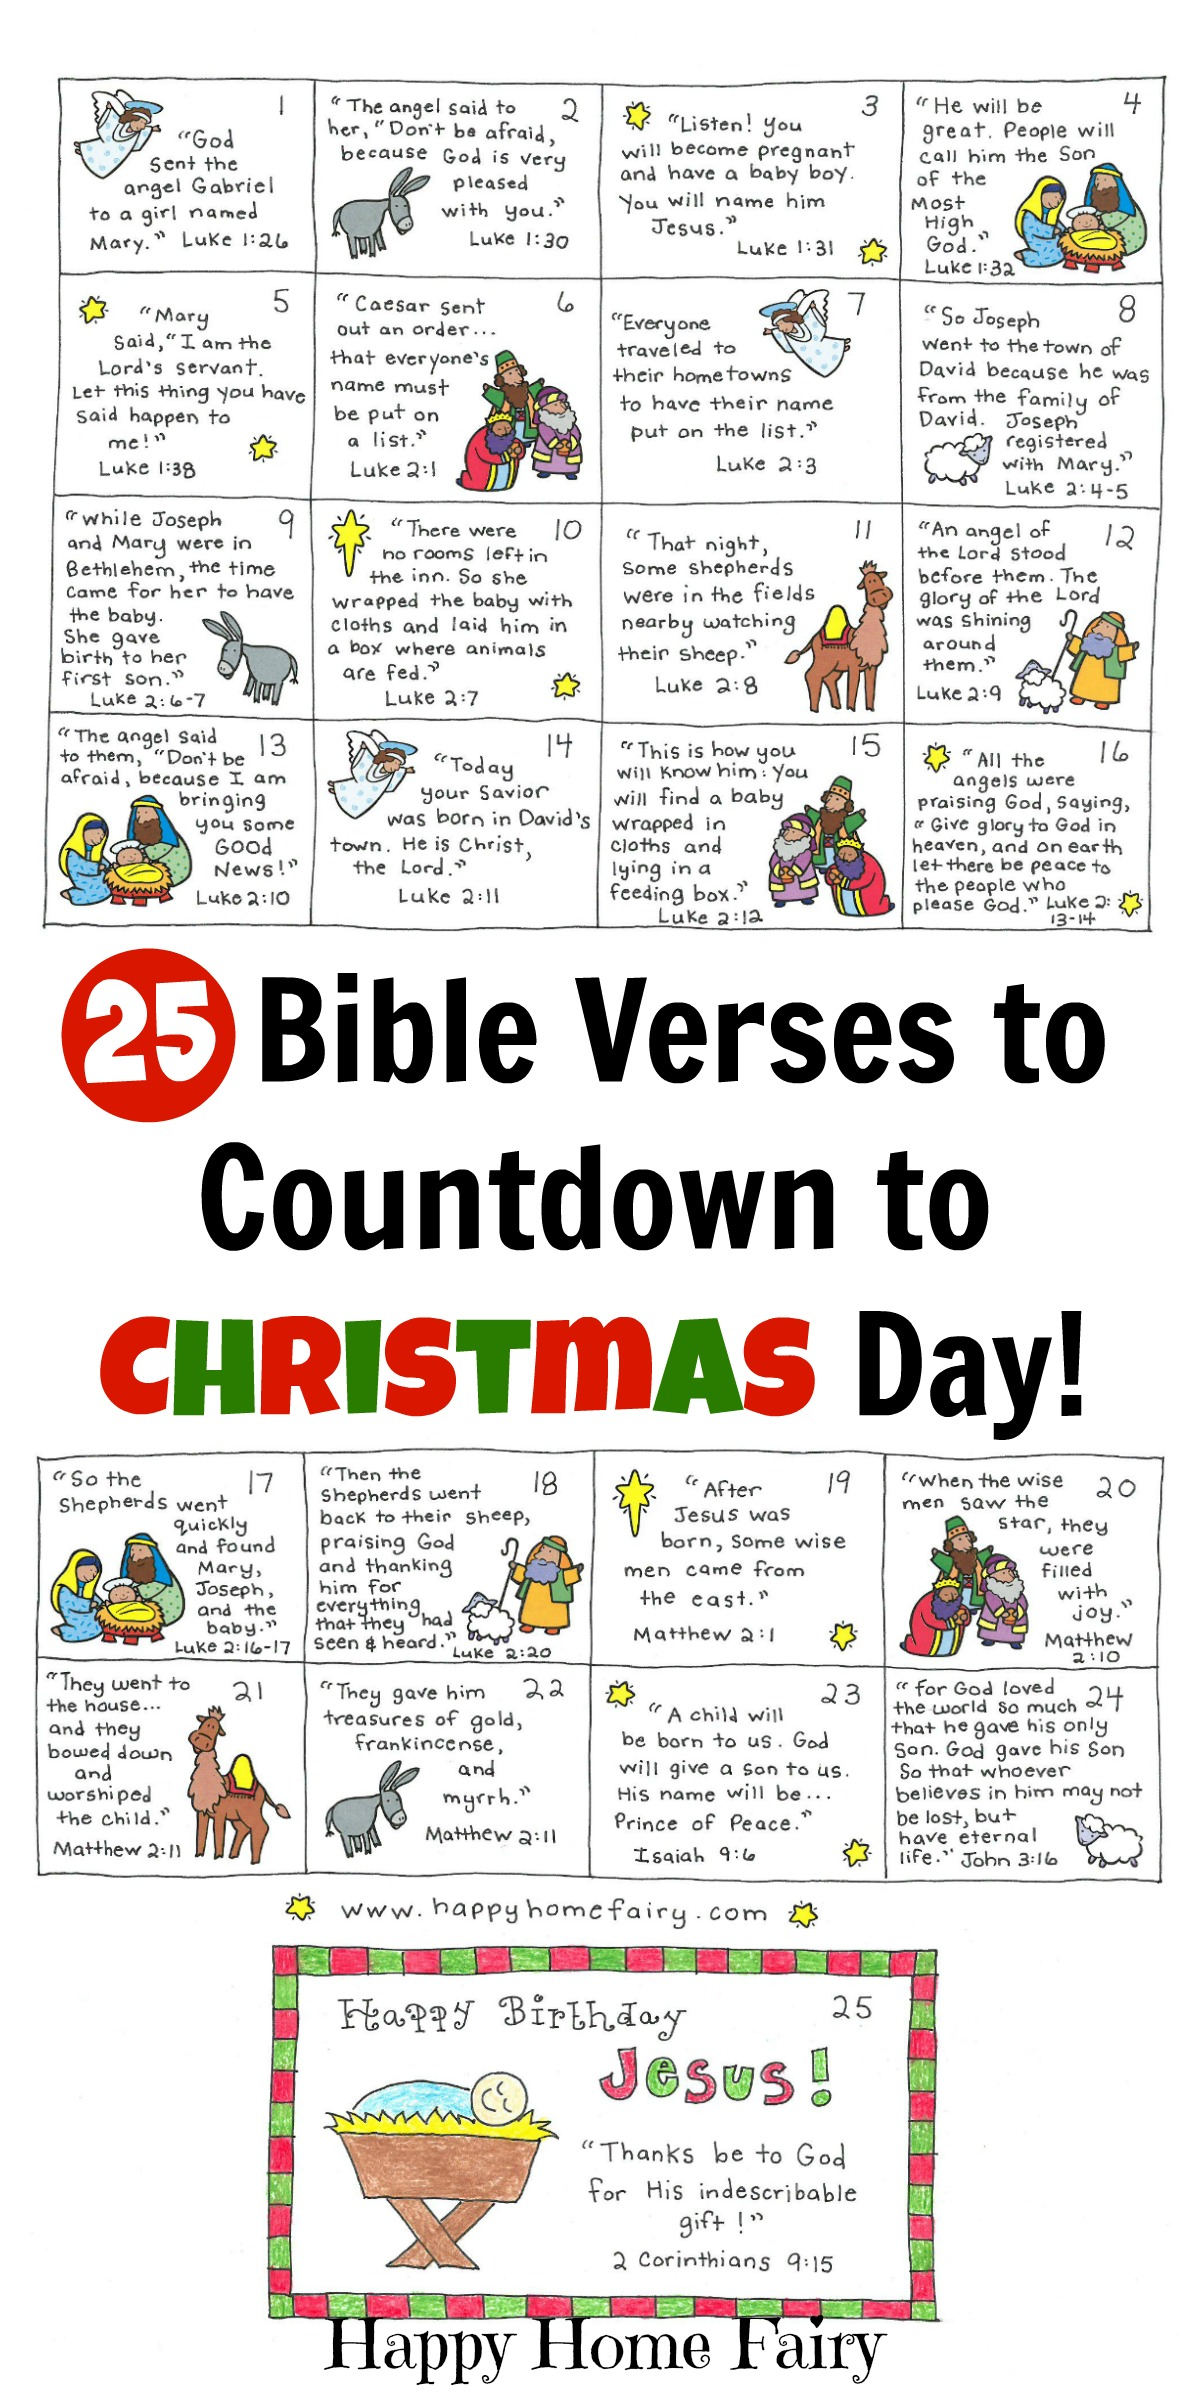 25 Bible Verses To Countdown To Christmas